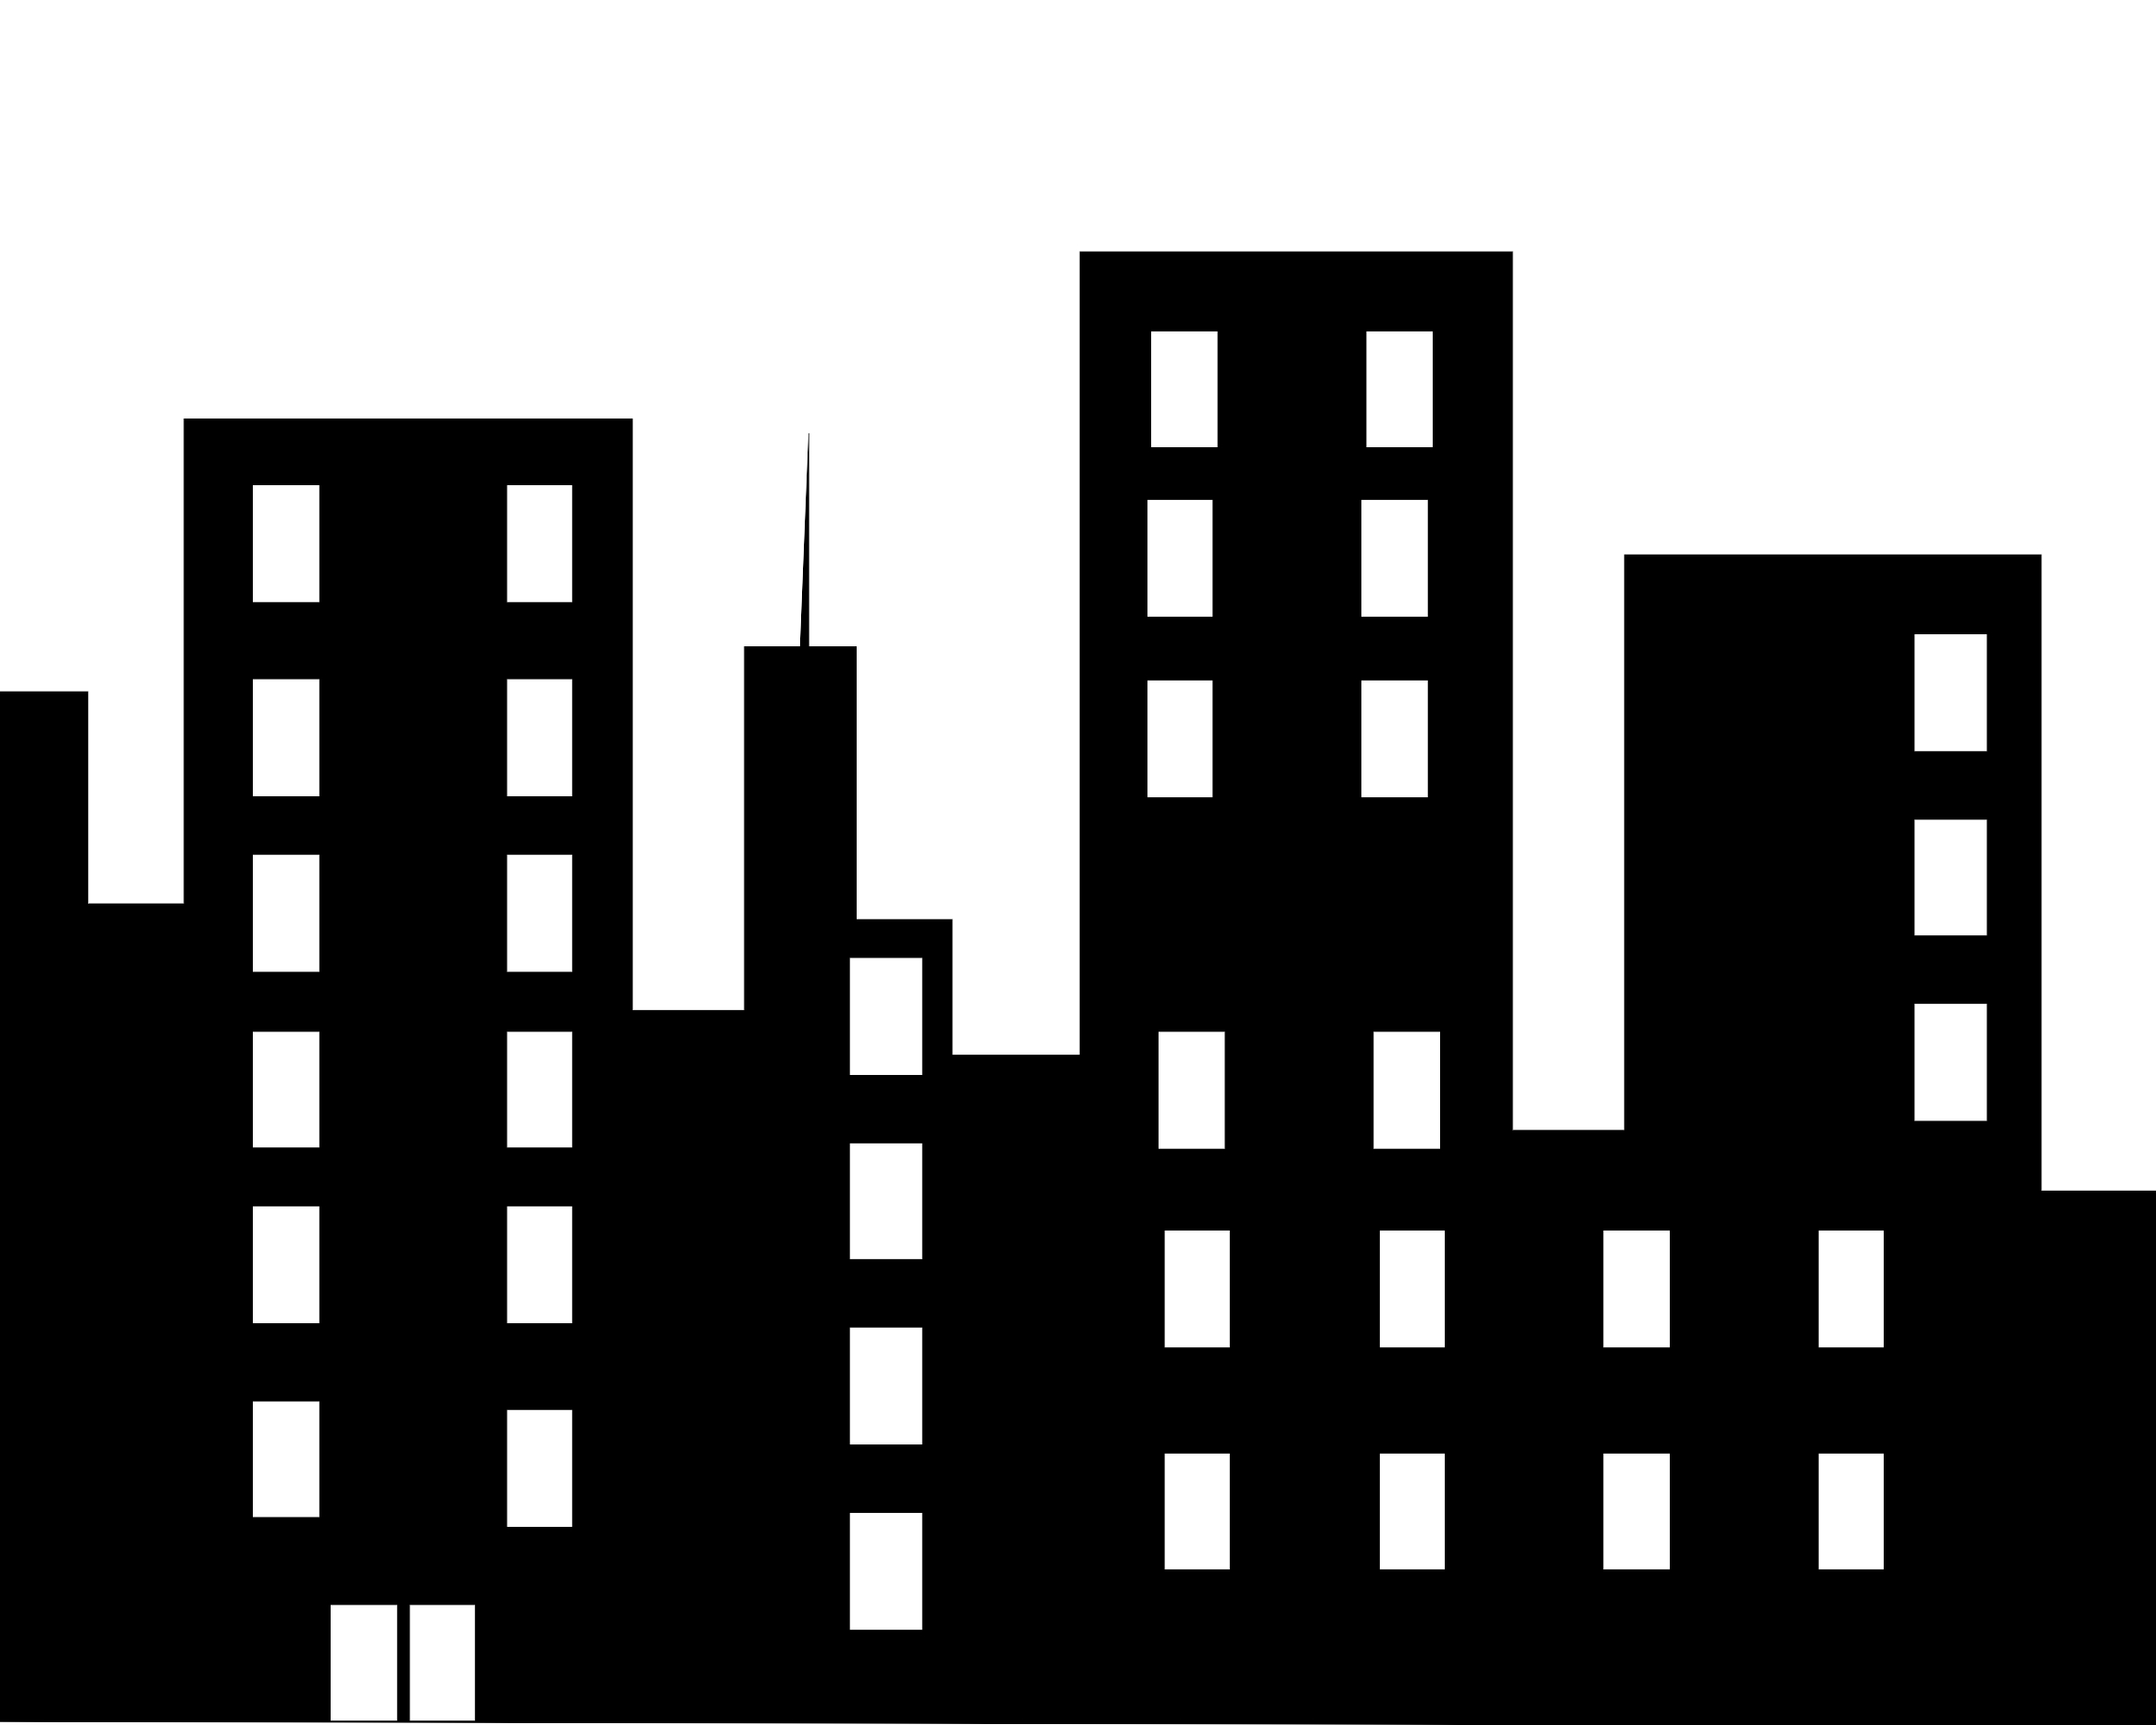 Buildings clipart Fresh Black Building Cliparts Free Download Clip.